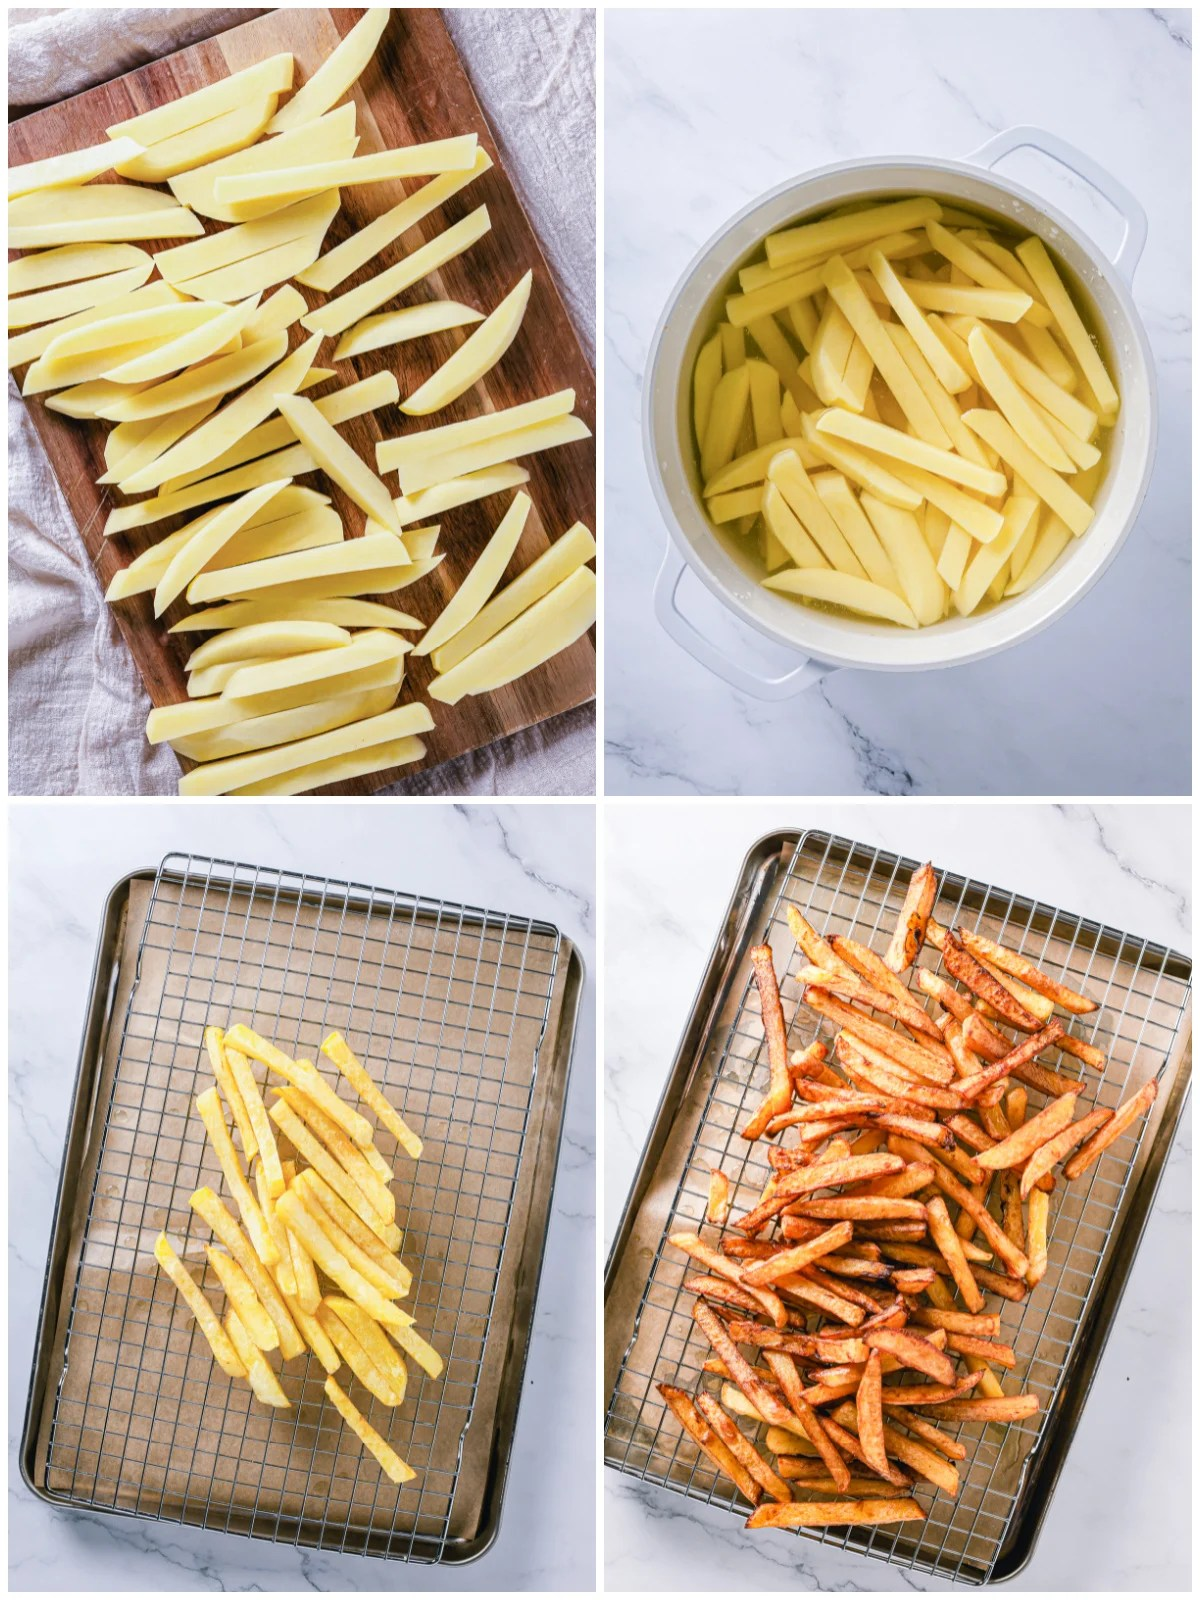 Step by step photos on how to make Homemade French Fries.